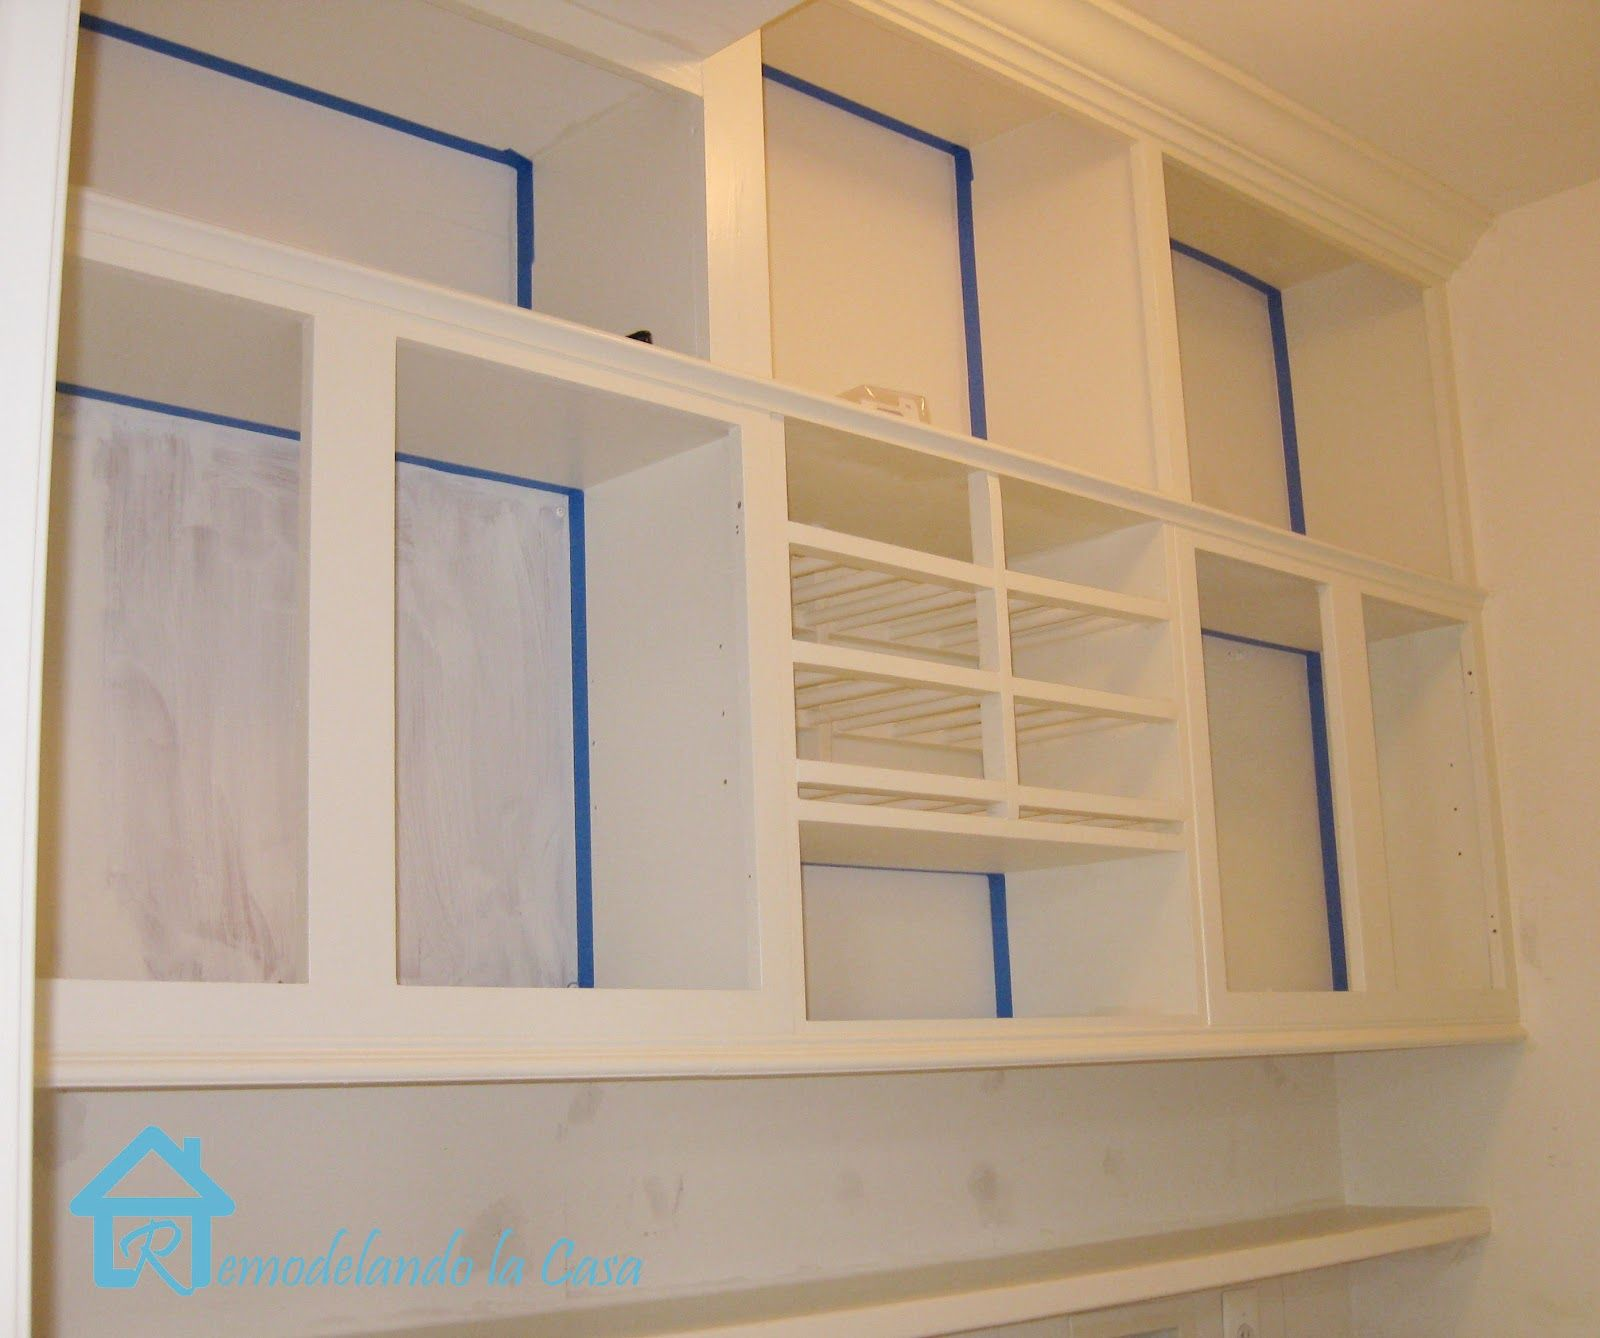 Overhead Kitchen Cabinet 2019: Building The Cabinets Up To The Ceiling In 2019